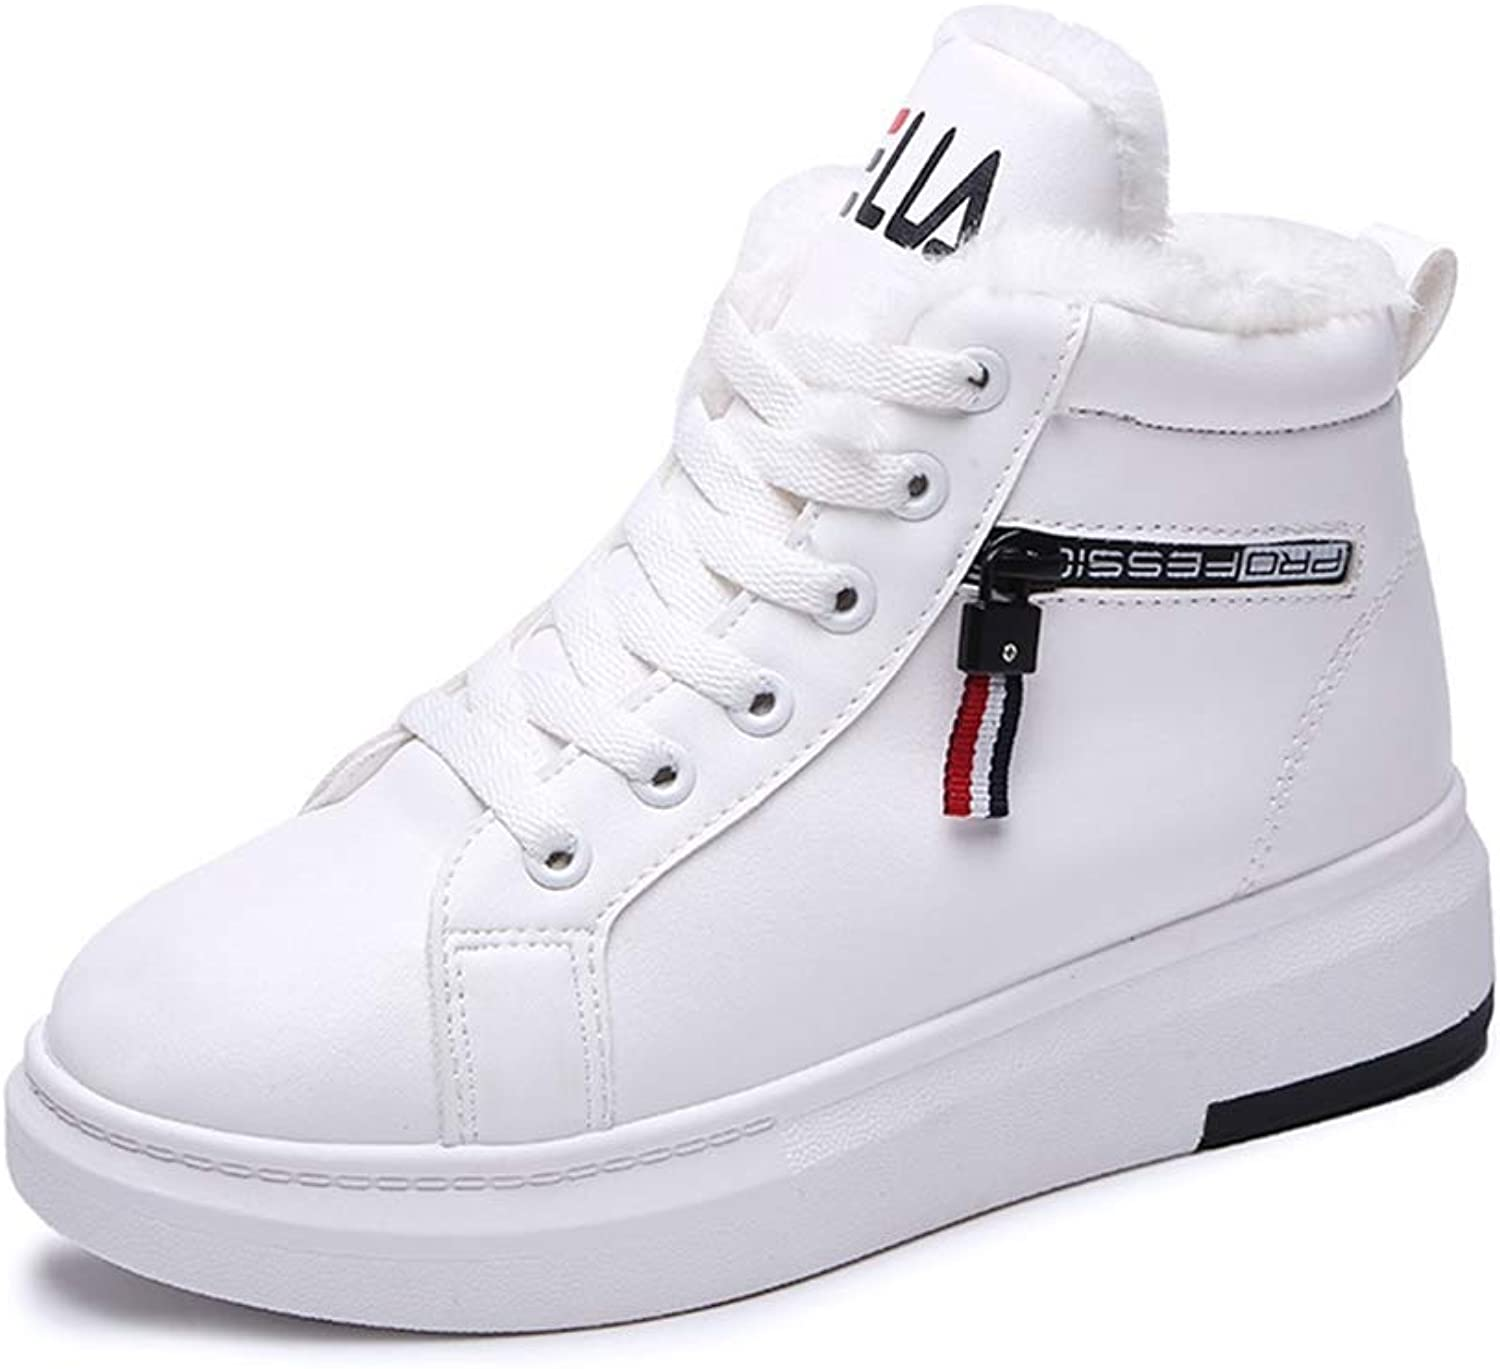 Gcanwea Winter Fashion Black White Casual Wedge Sneakers Ladies Lace Up Leather Flats shoes White 6 M US